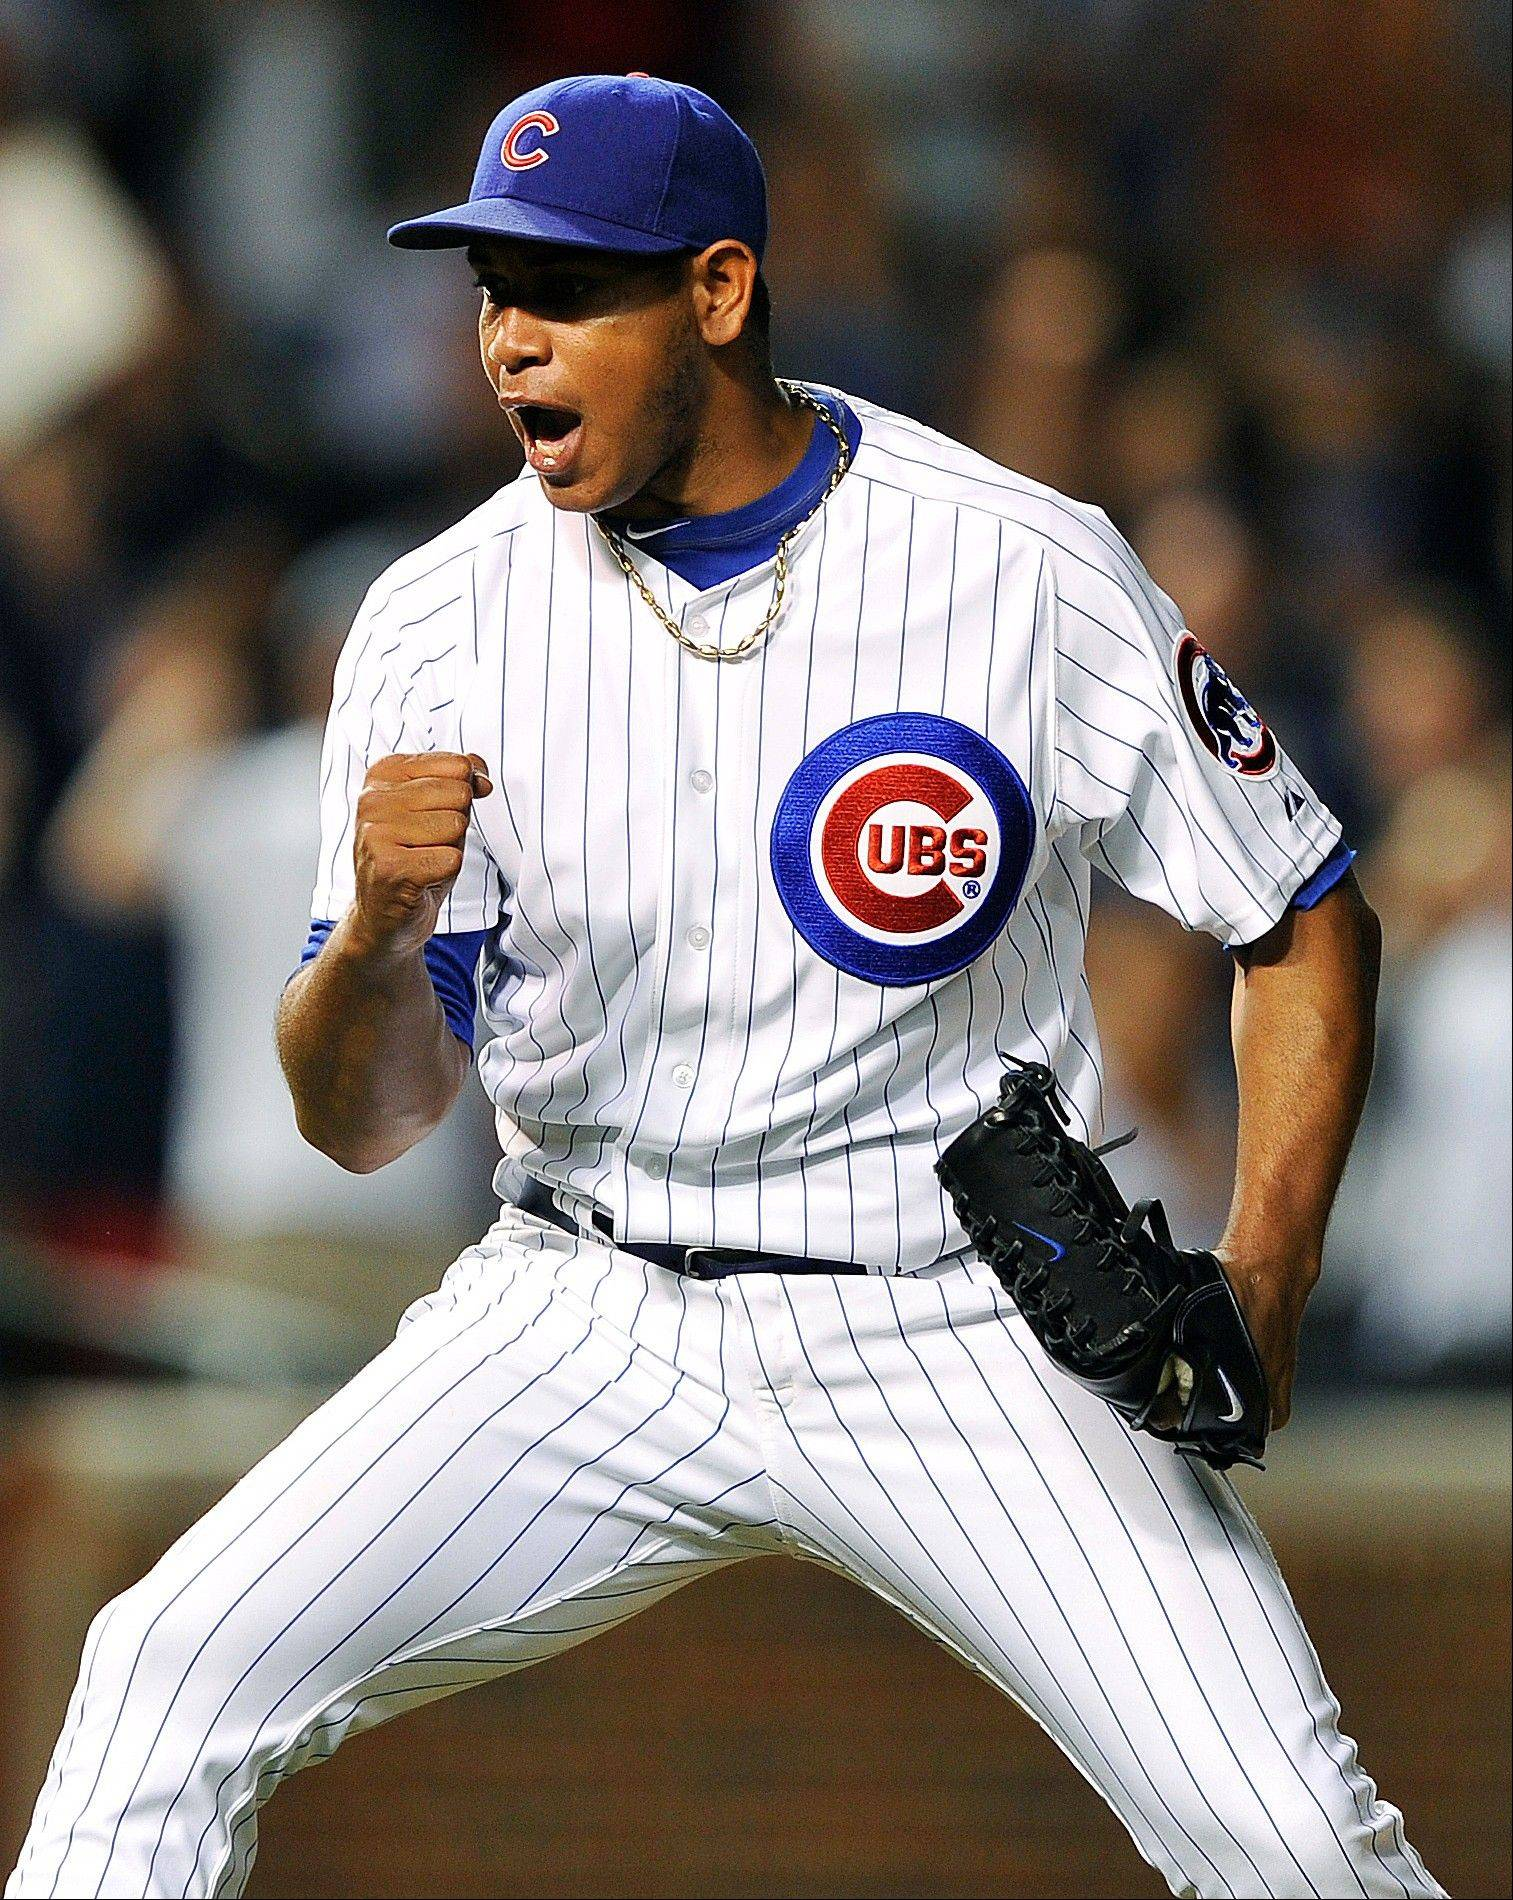 Carlos Marmol notched the 100th save of his career when the Cubs beat the Mets 5-3 on Tuesday at Wrigley Field.